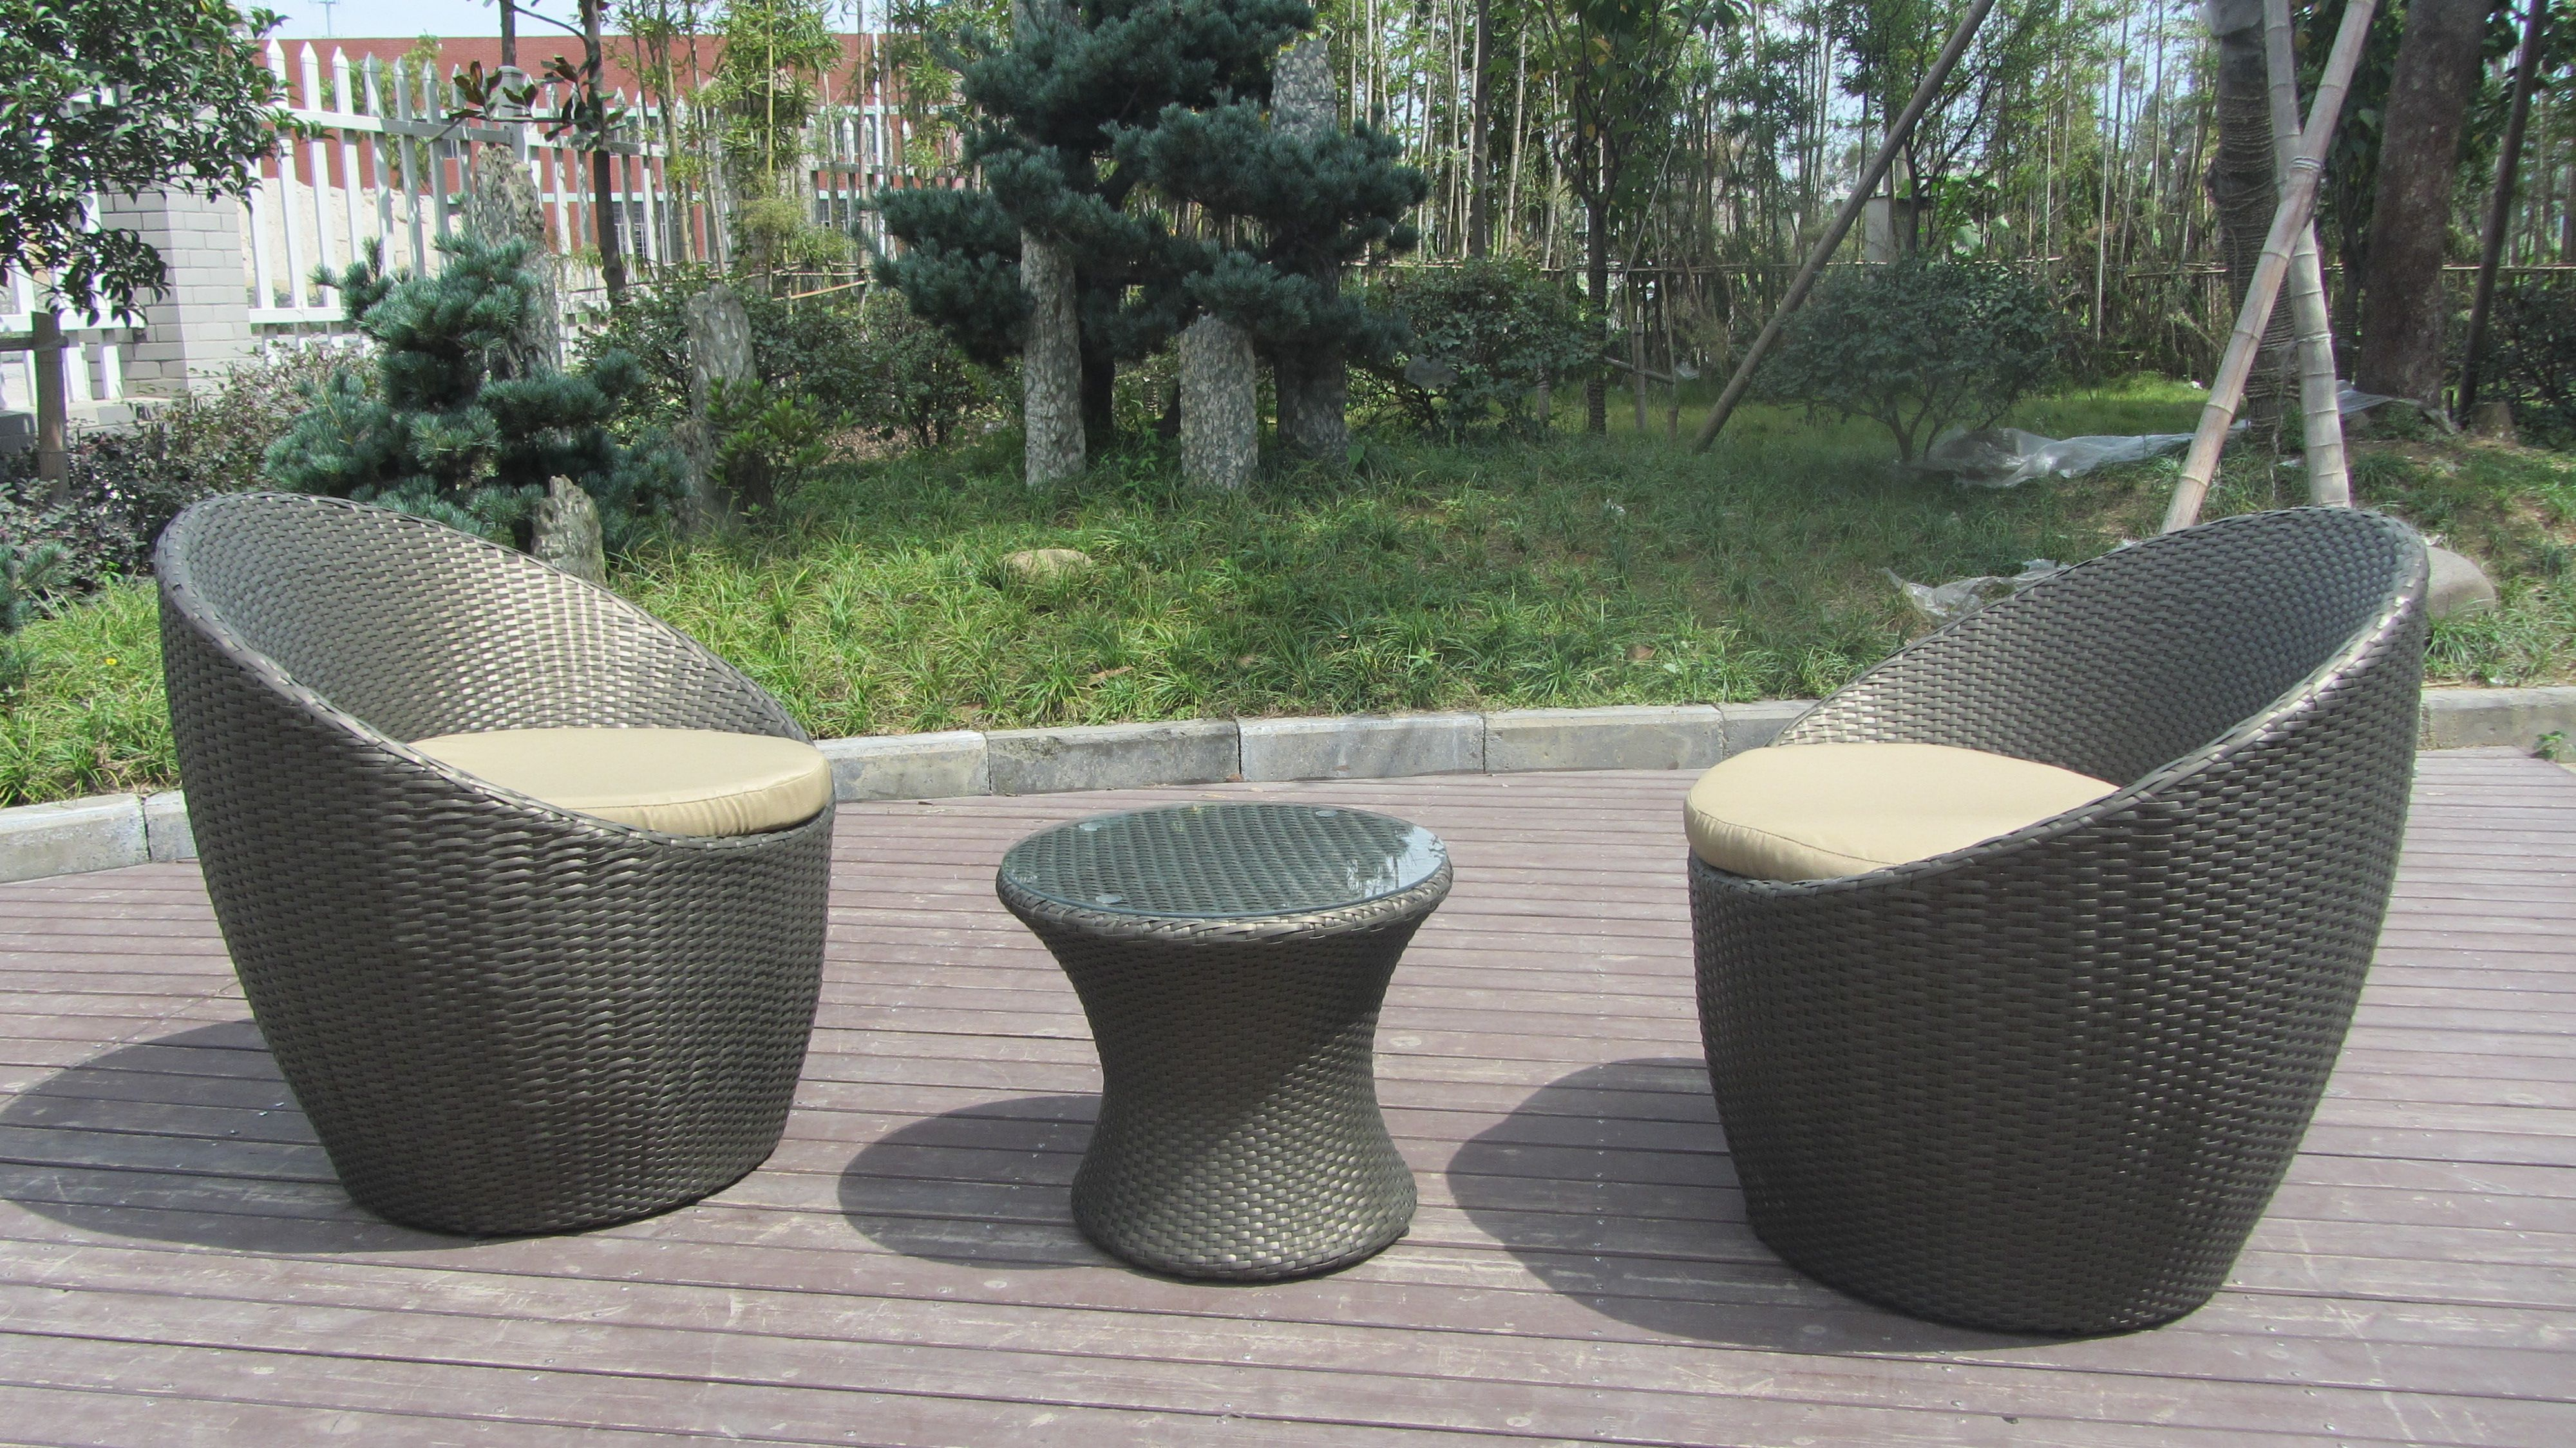 Tg 7073 China Supplier Of Rattan Outdoor Furniture From Trygo Furniture Rattan Outdoor Furniture Outdoor Furniture Outdoor Patio Furniture